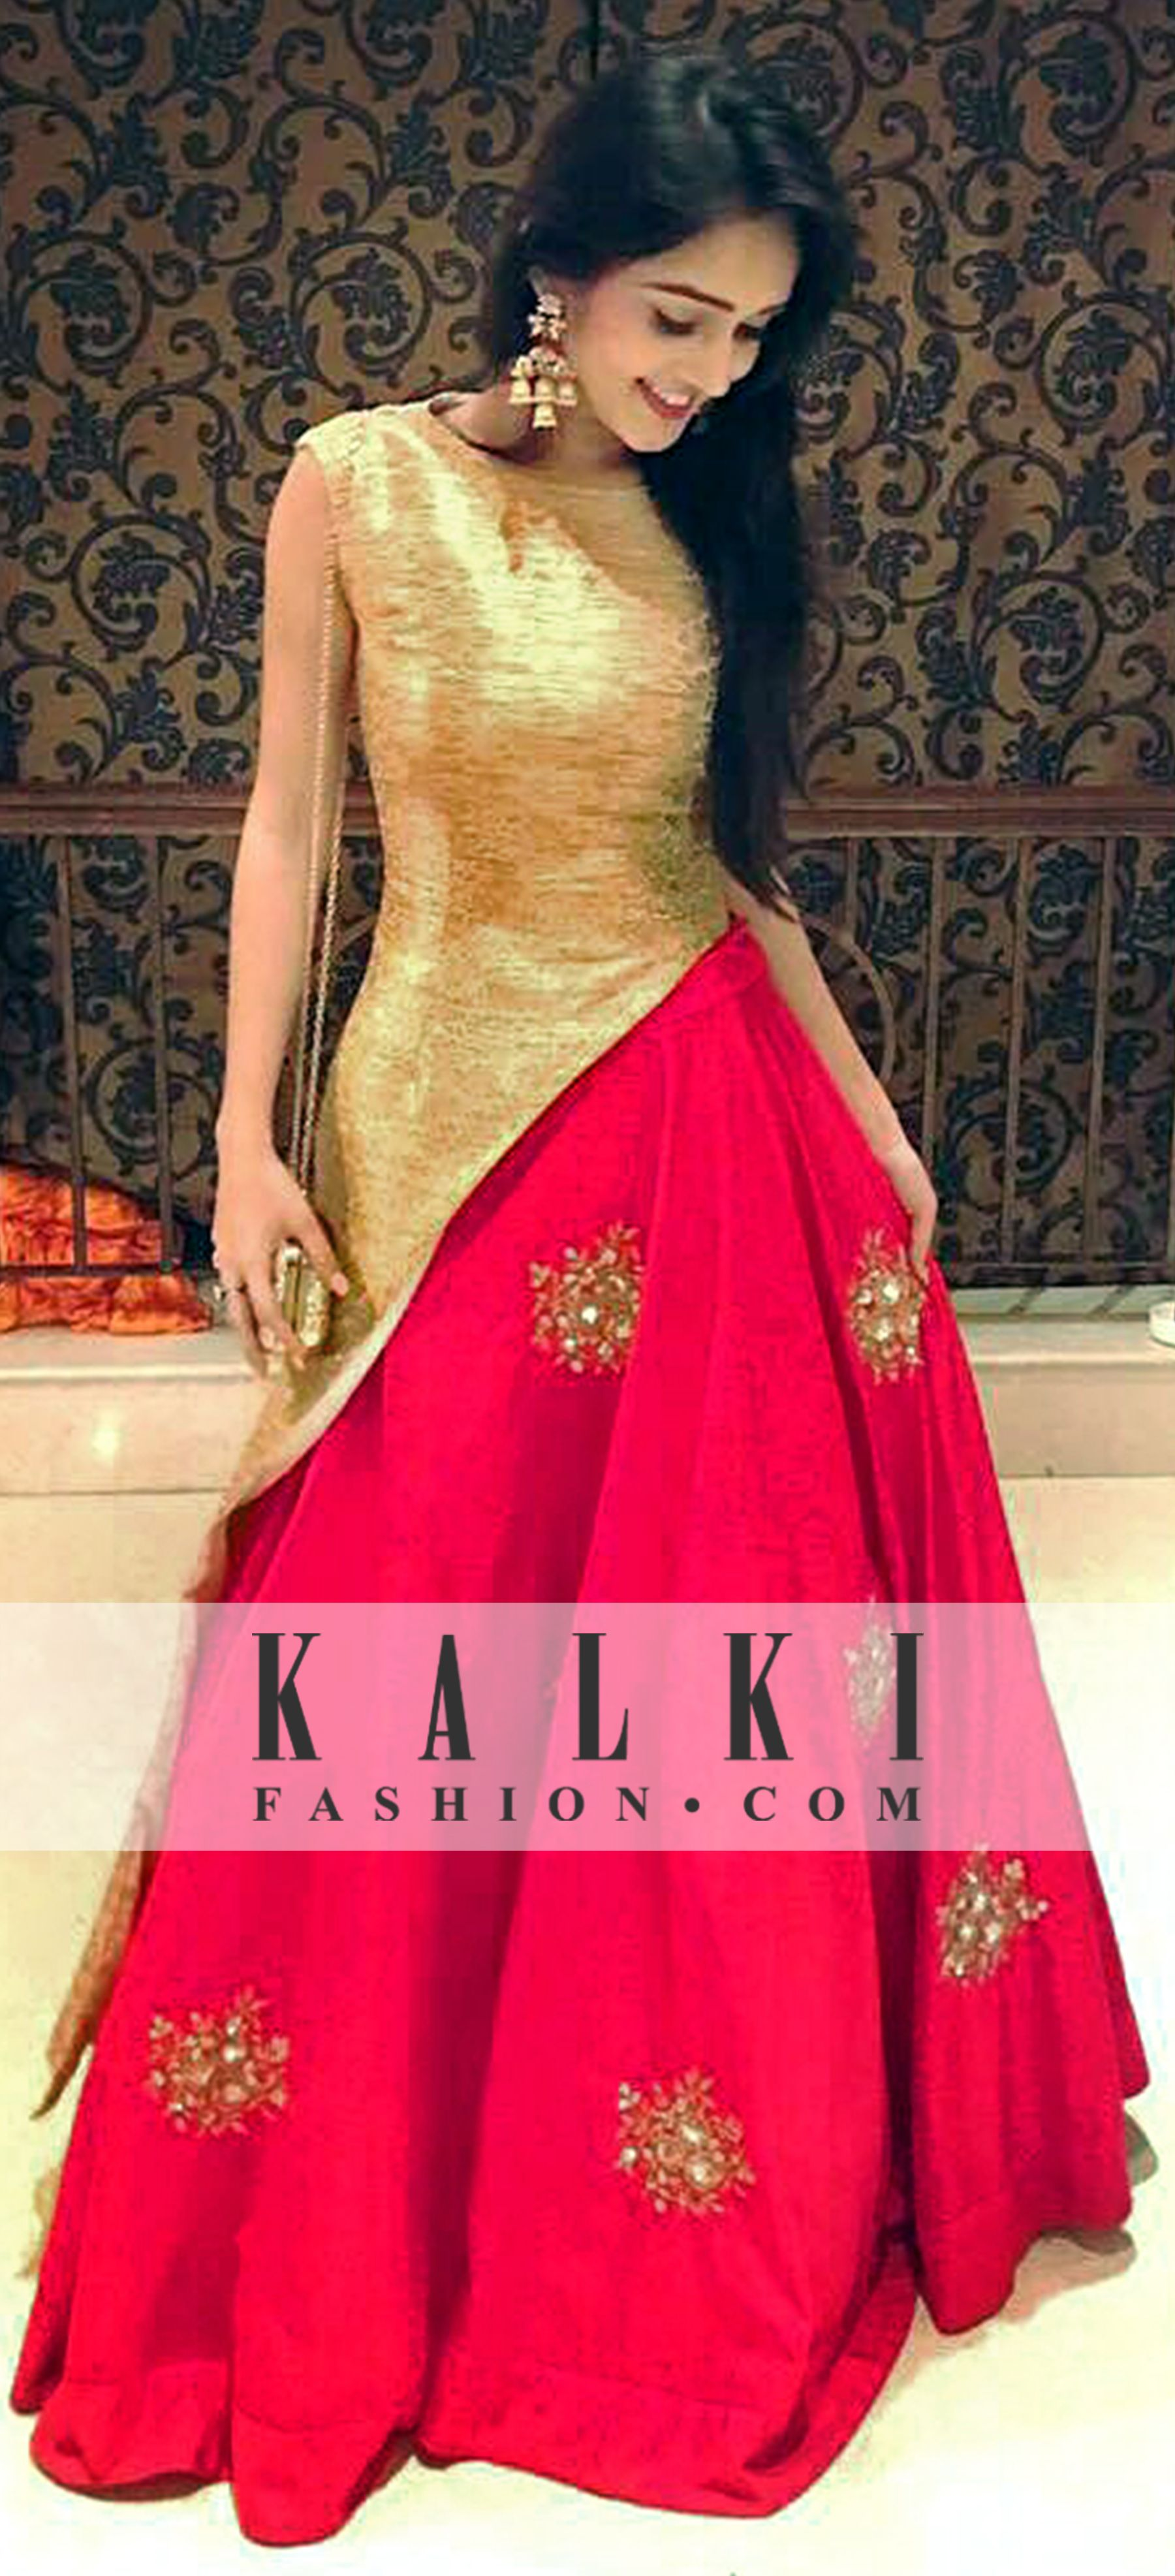 Tanya Sharma SKU 362923 PRICE Rs 19990 KALKI